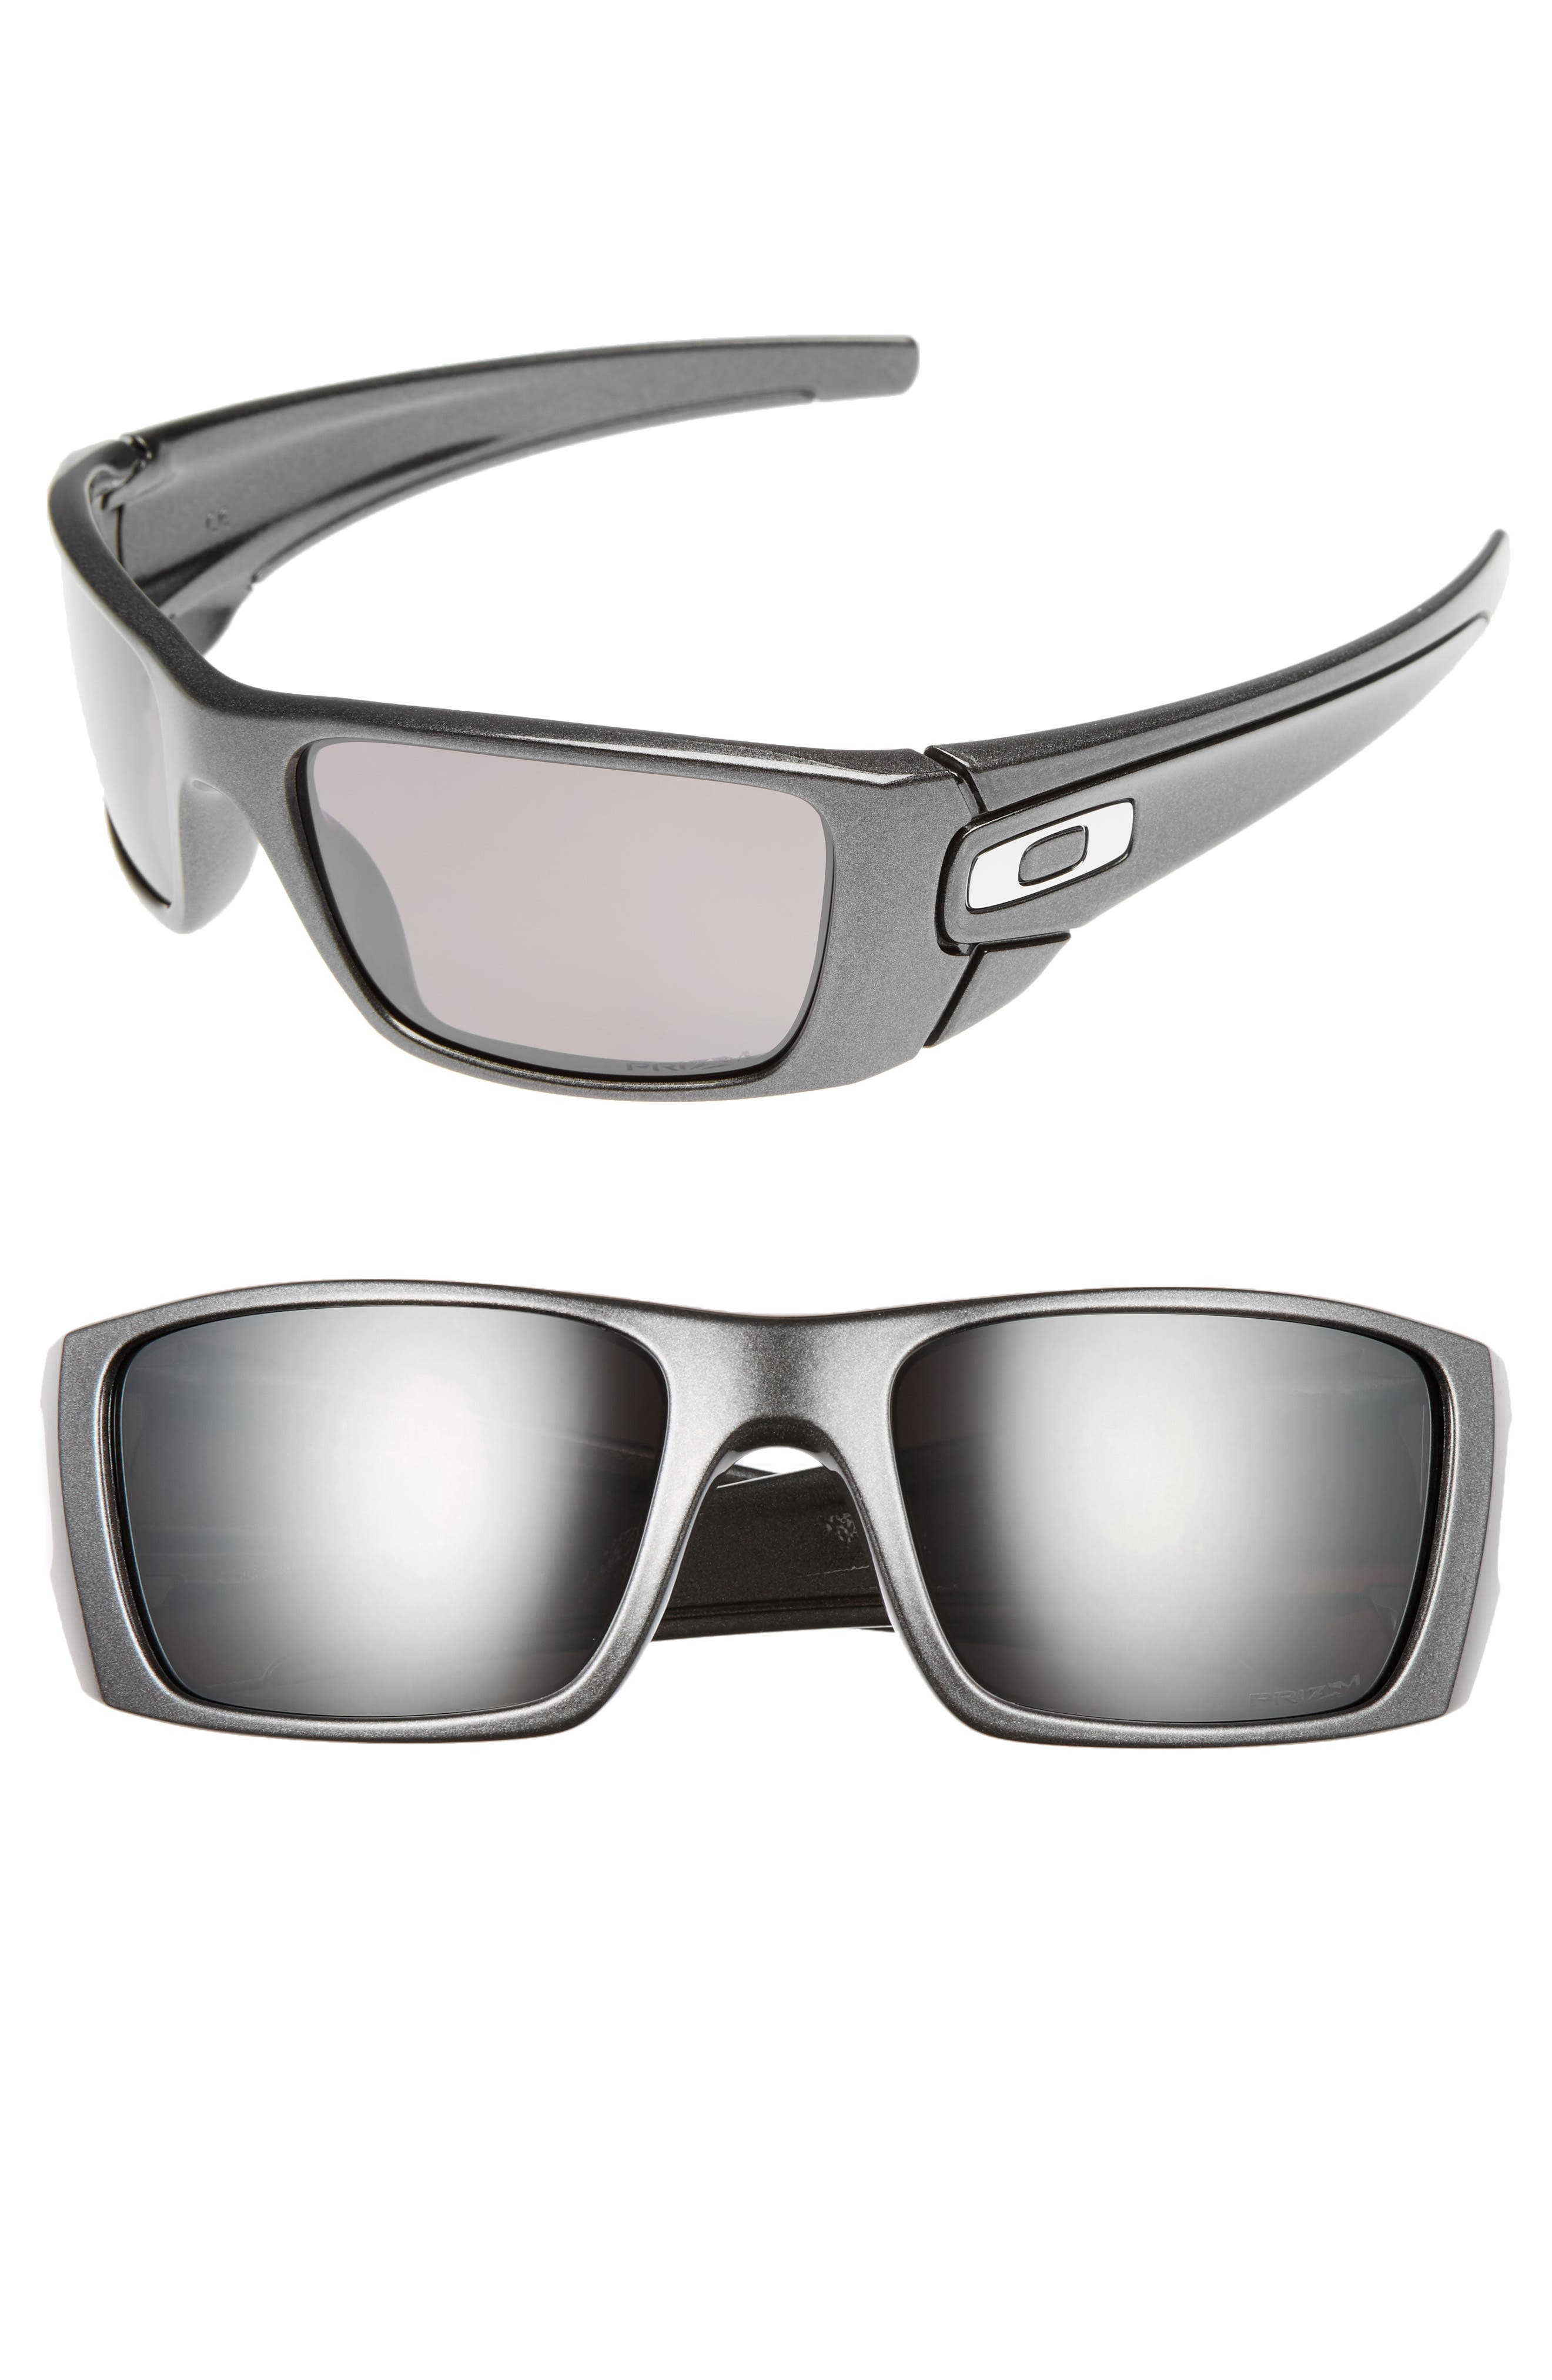 Oakley Fuel Cell 60mm Polarized Sunglasses